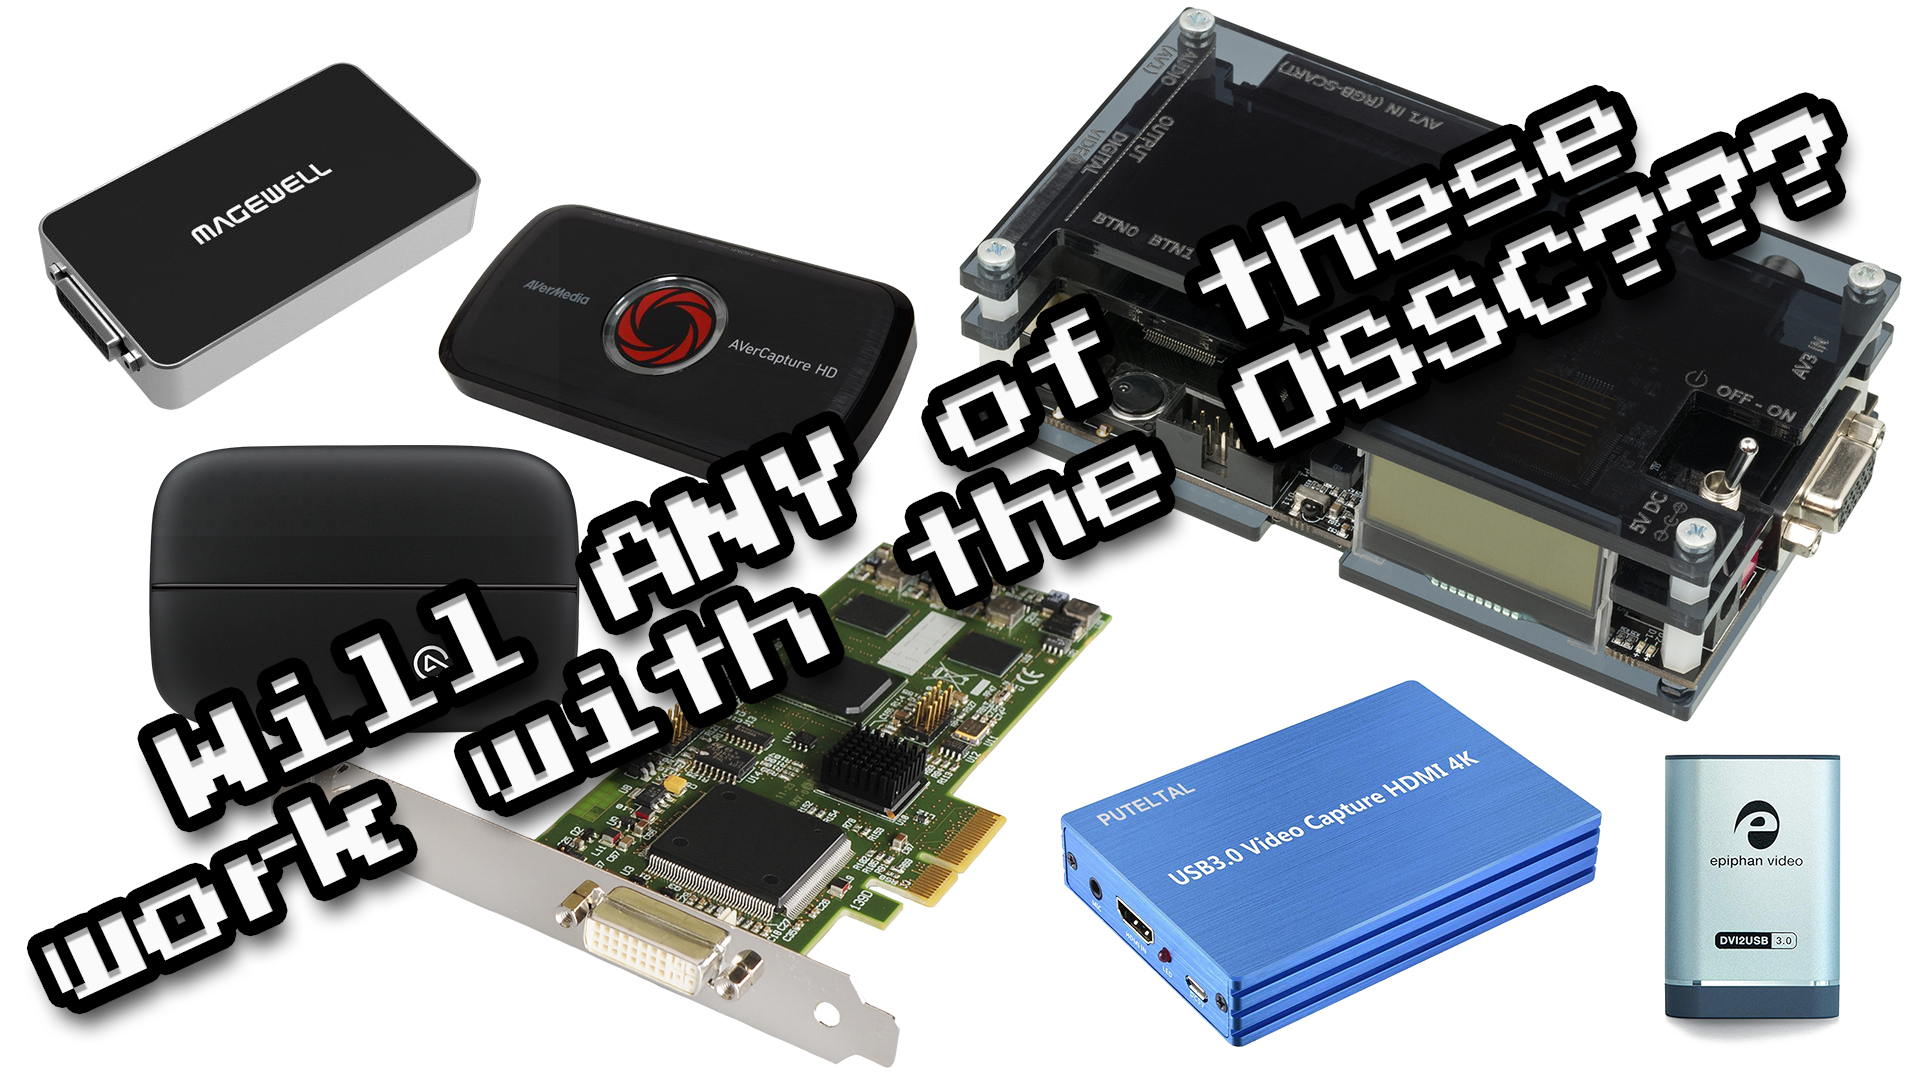 OSSC 5x Mode Capture Card Shootout